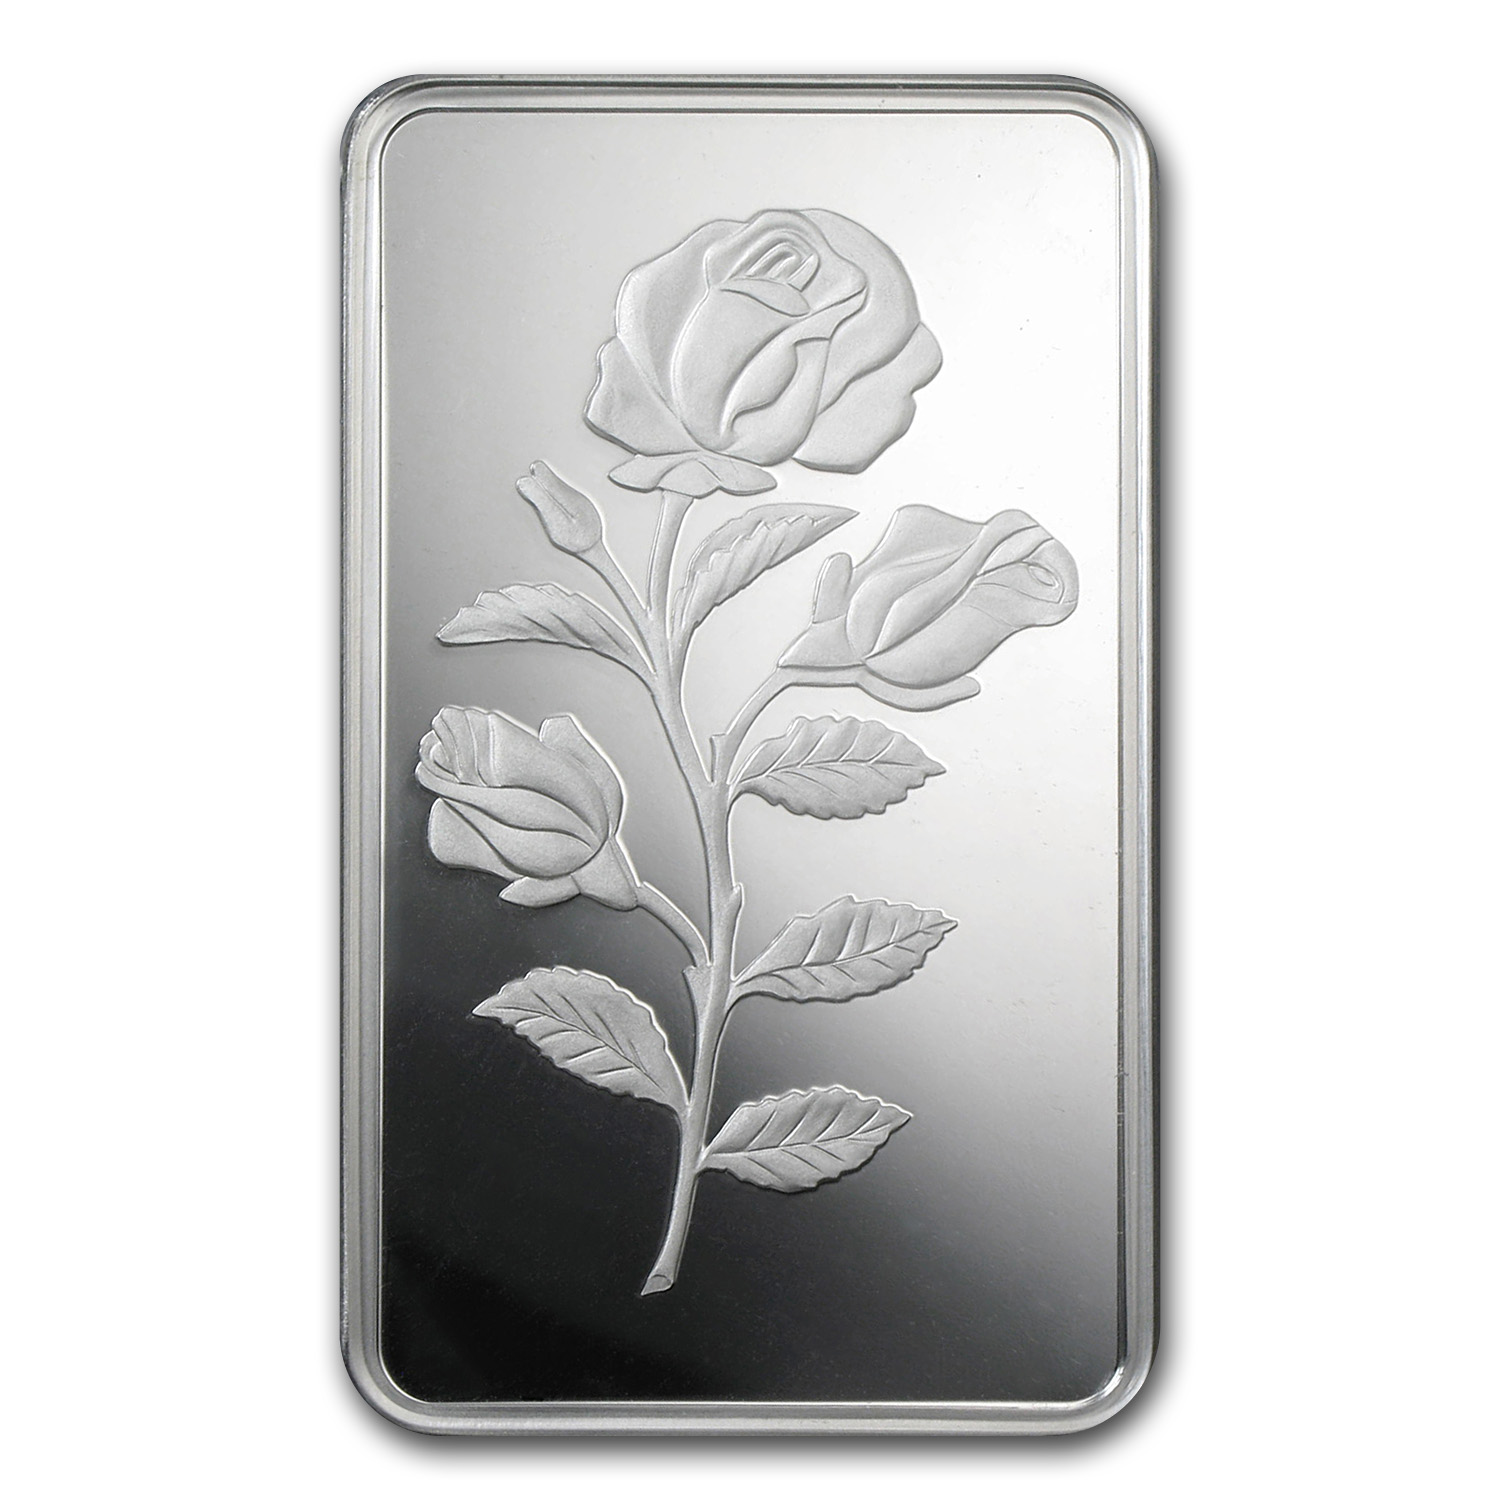 100 gram Silver Bar - PAMP Suisse (Rosa, In Assay)